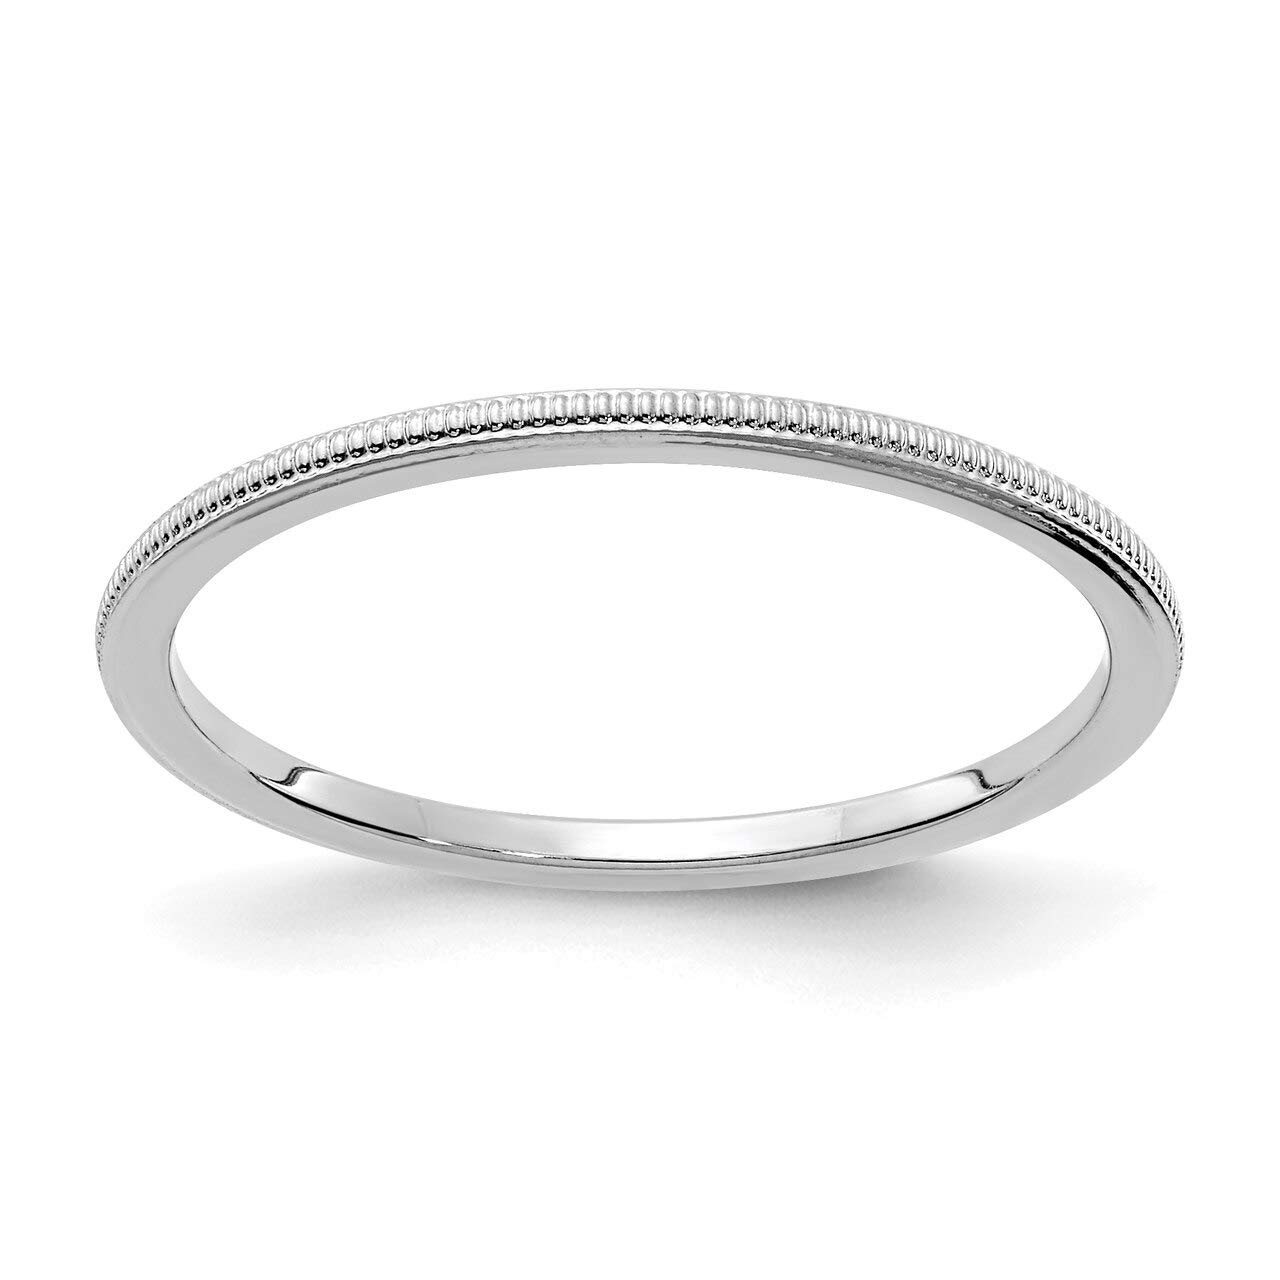 Lex & Lu 10k White Gold 1.2mm Milgrain Stackable Band Ring LAL227-Prime by Lex & Lu